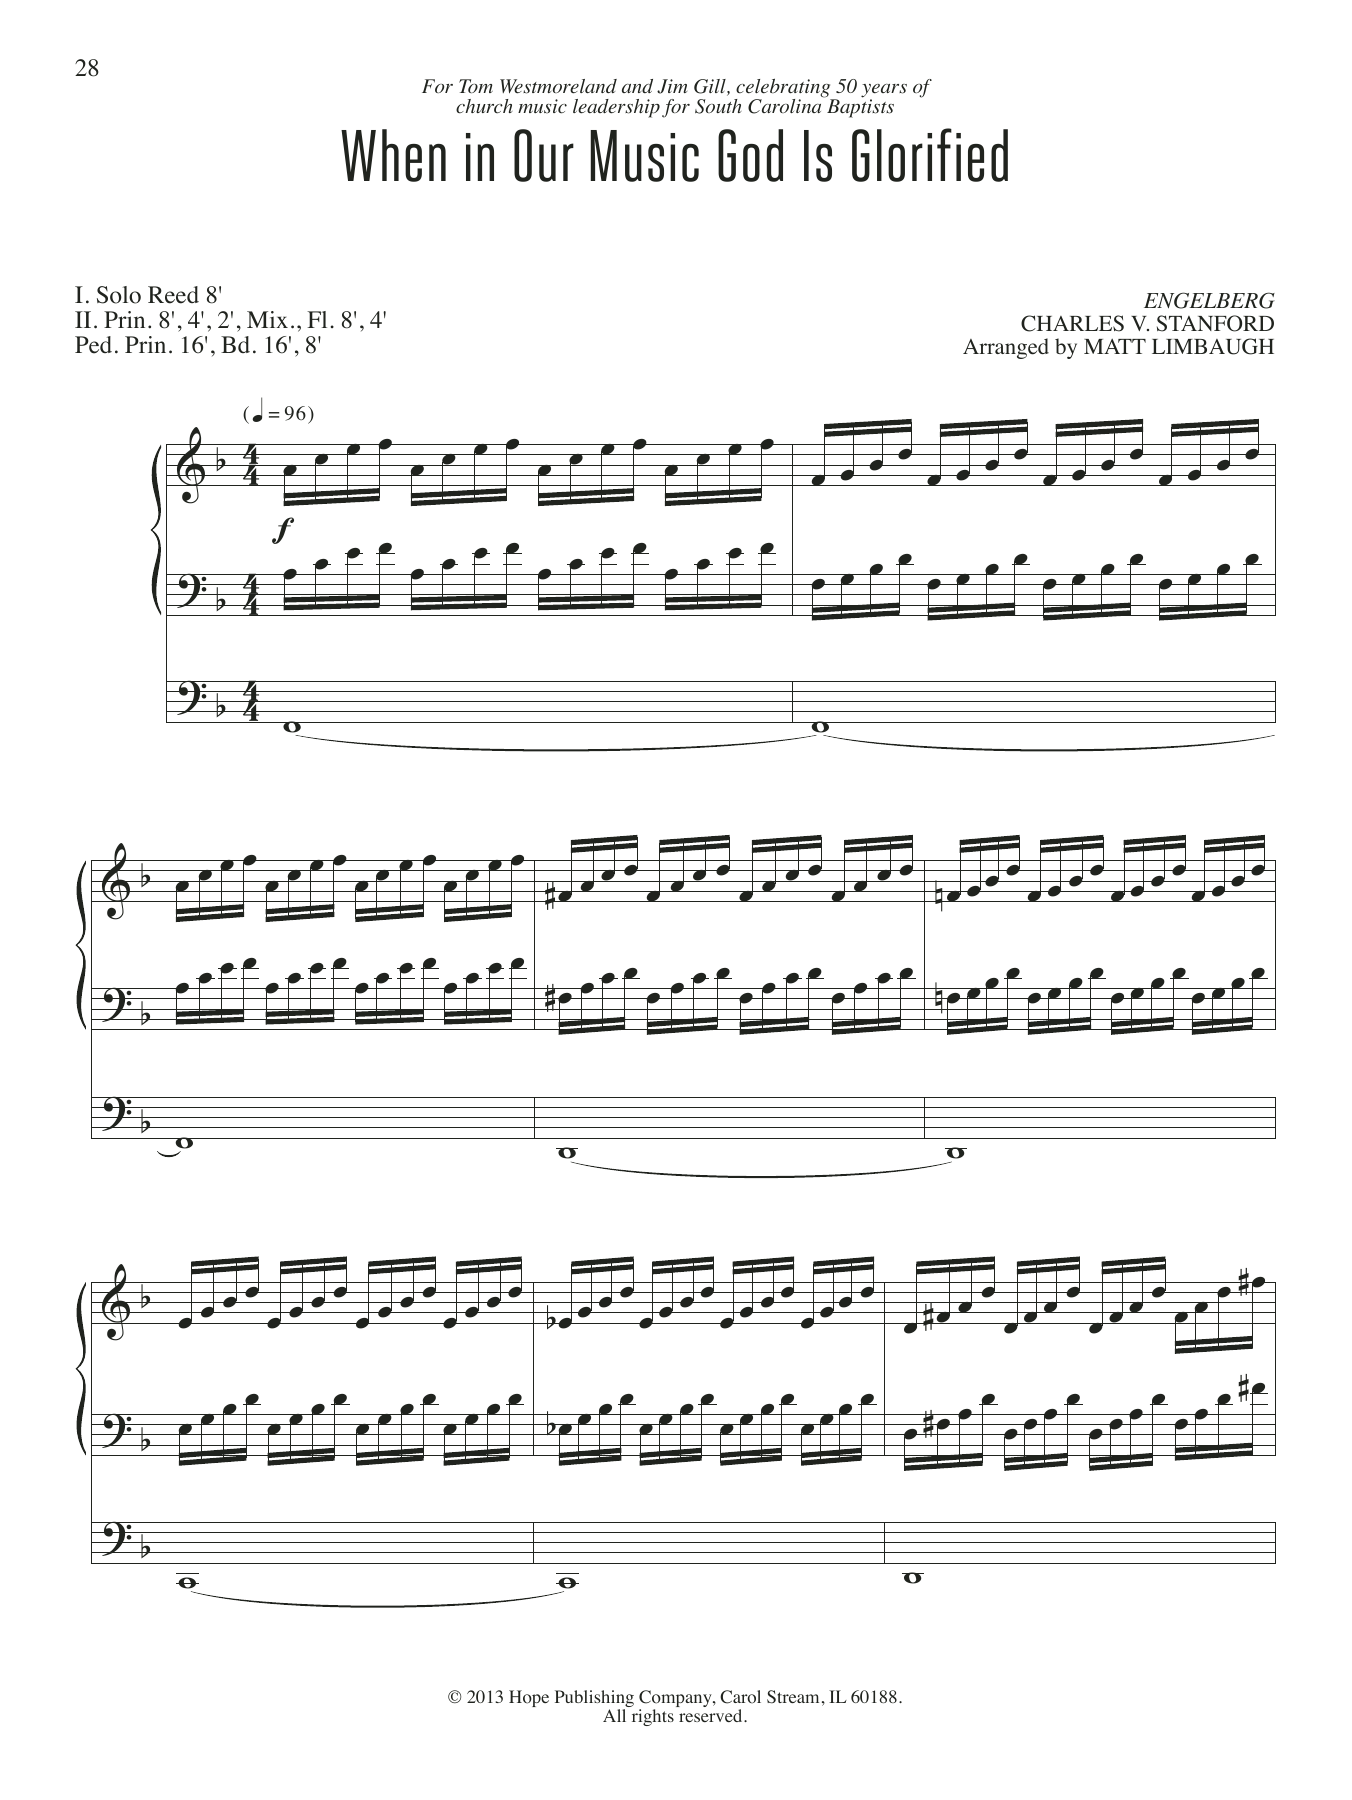 When in Our Music God Is Glorified Sheet Music